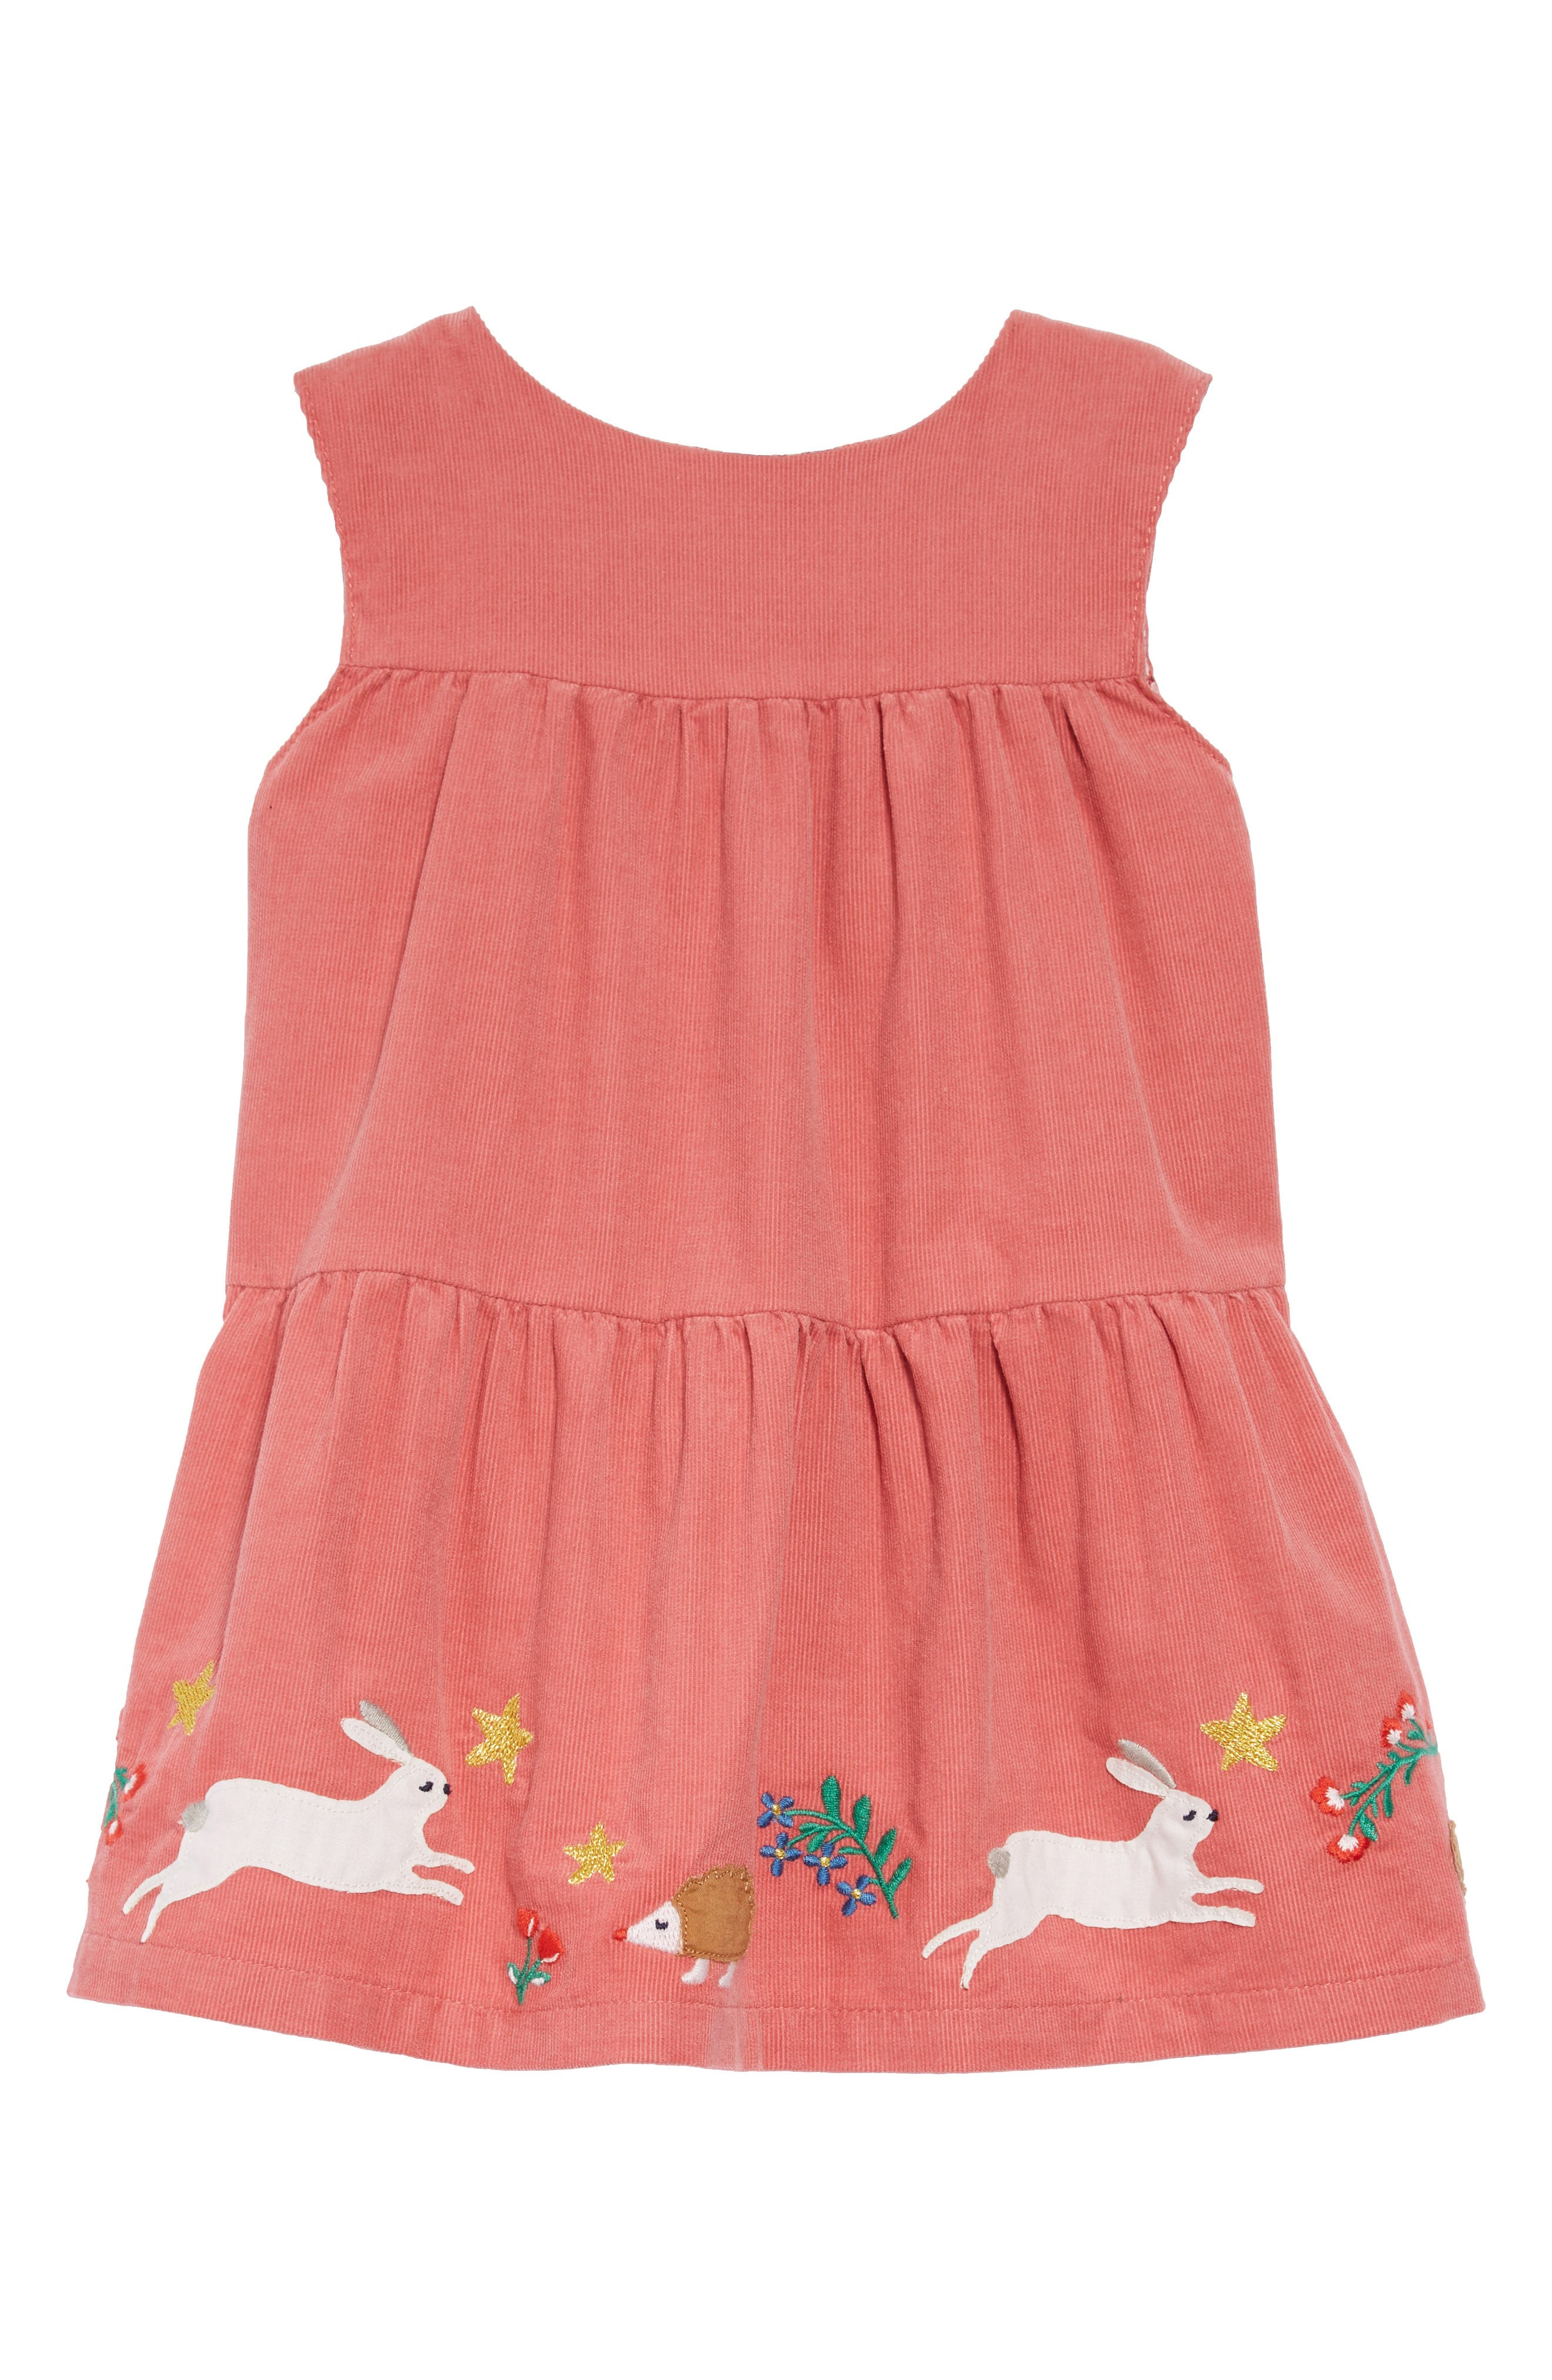 MINI BODEN Tiered Corduroy Dress, Main, color, 664